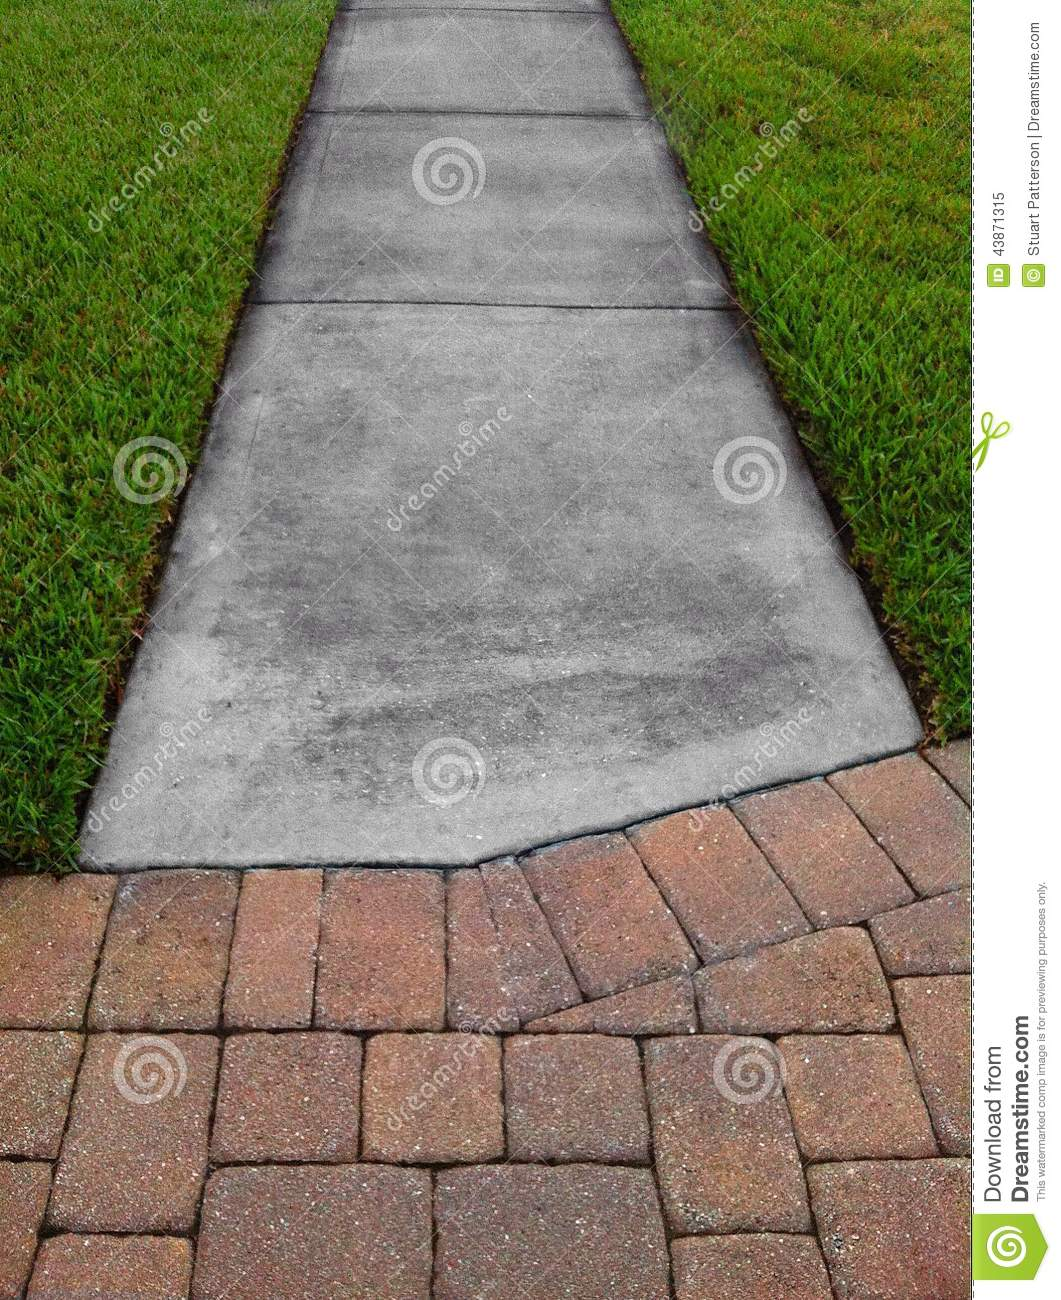 Grass sidewalk and pavers stock photo image 43871315 for Green pavers